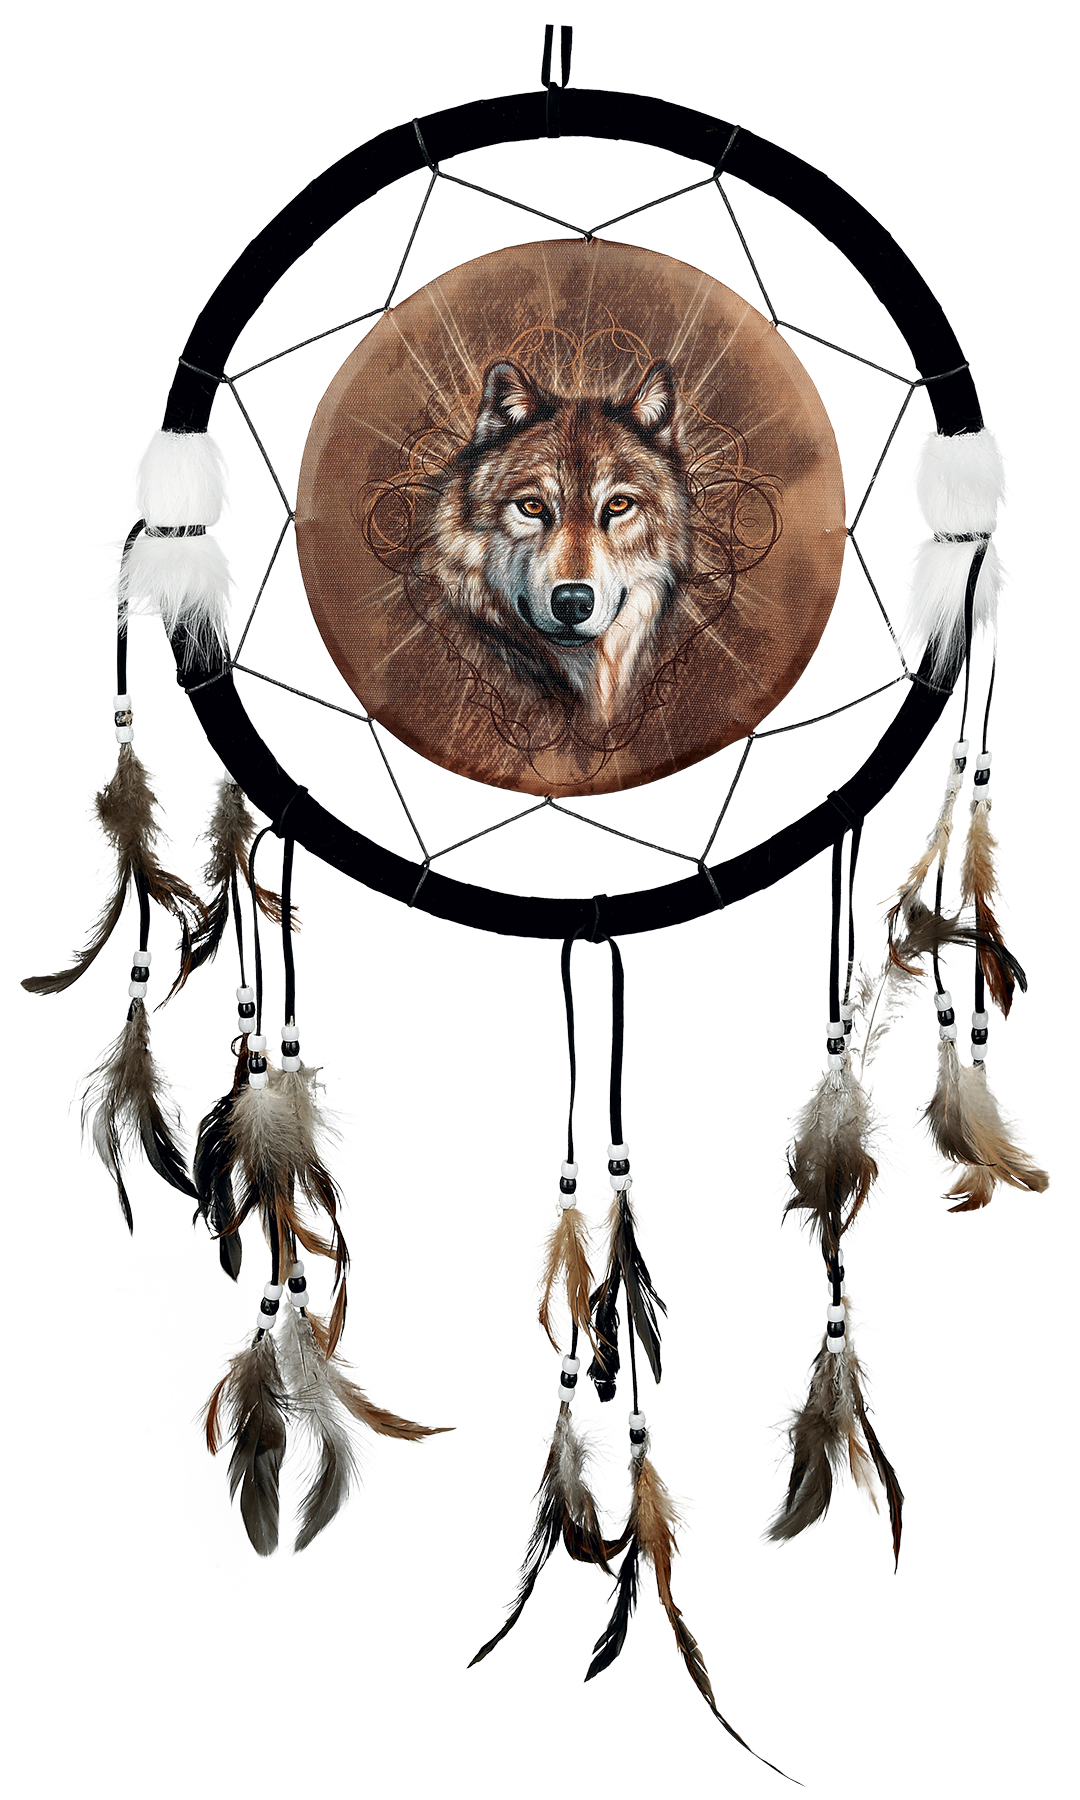 Gray Dreamcatcher Ages Lone Middle Game Wolf PNG Image